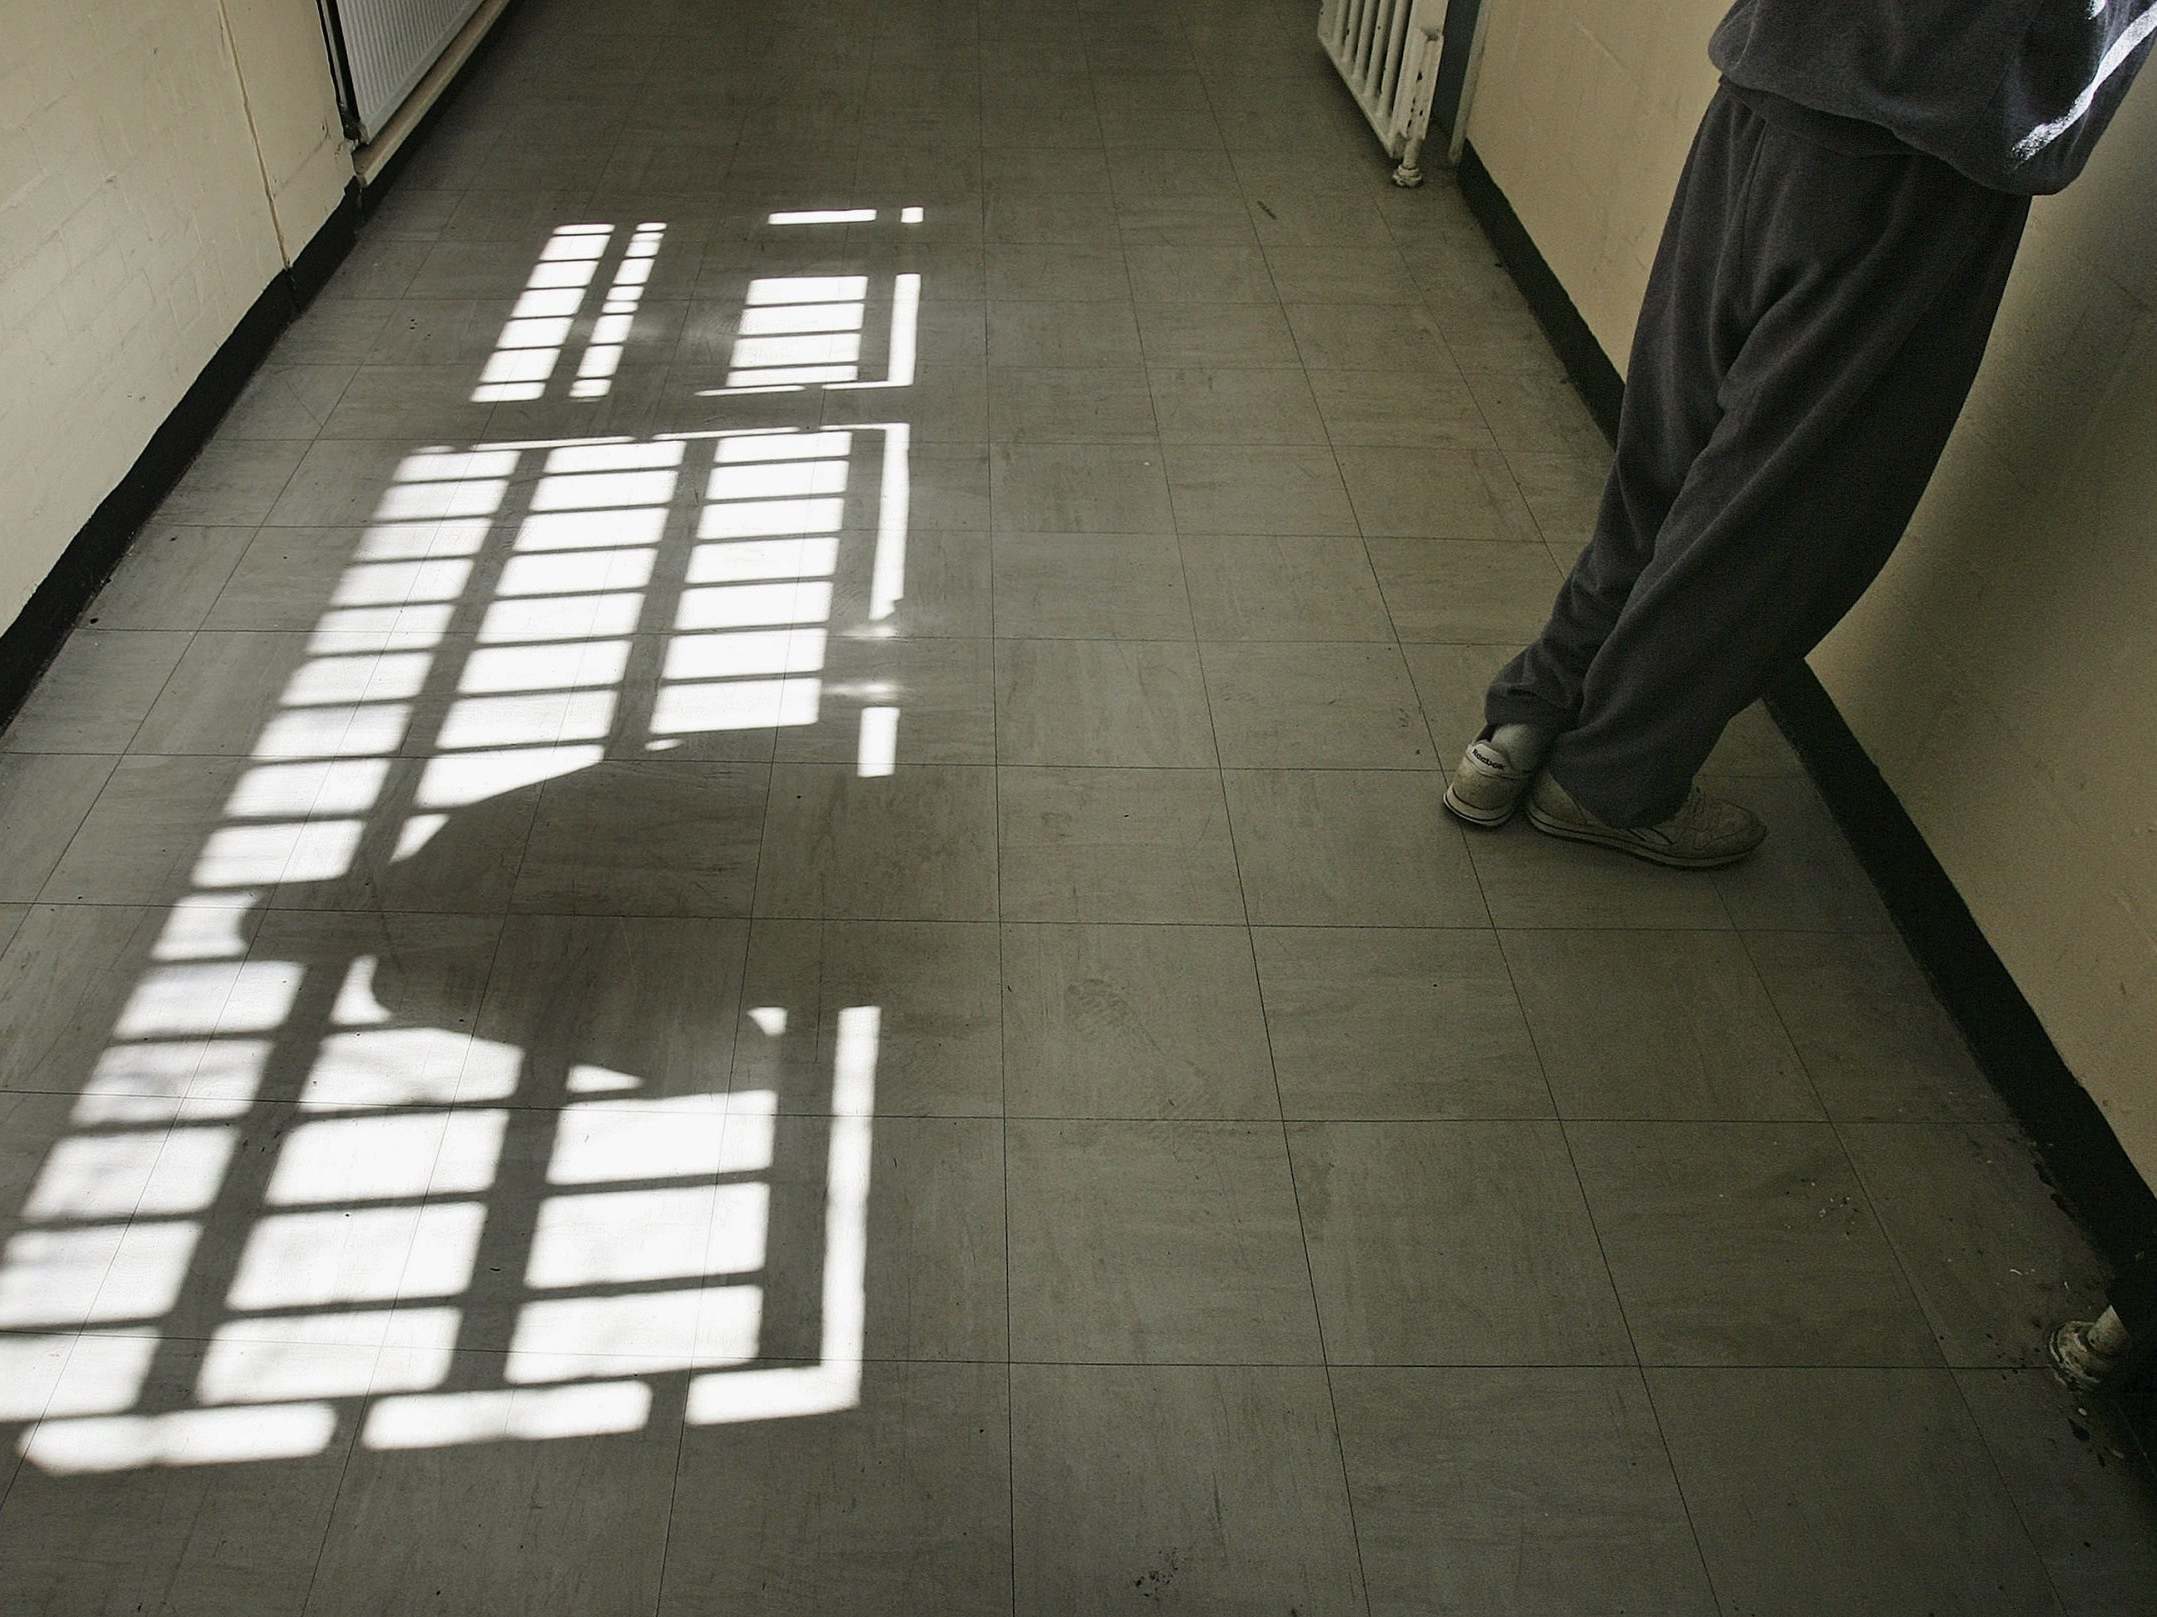 Prison Reform - latest news, breaking stories and comment